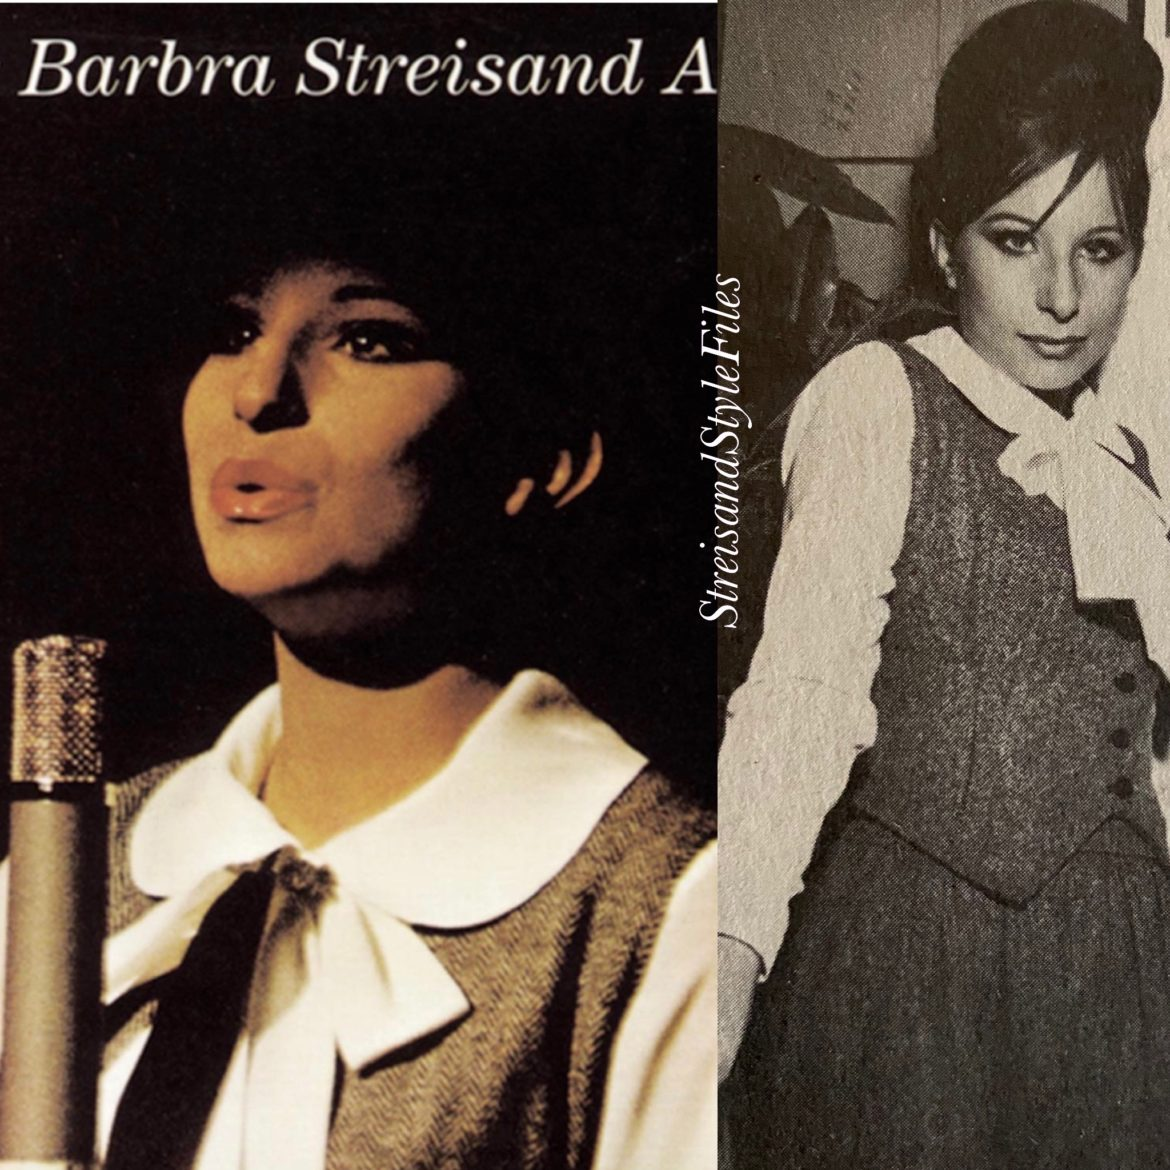 Self designed herringbone ensemble on the cover of The Barbra Streisand Album (photo from the Bon Soir)